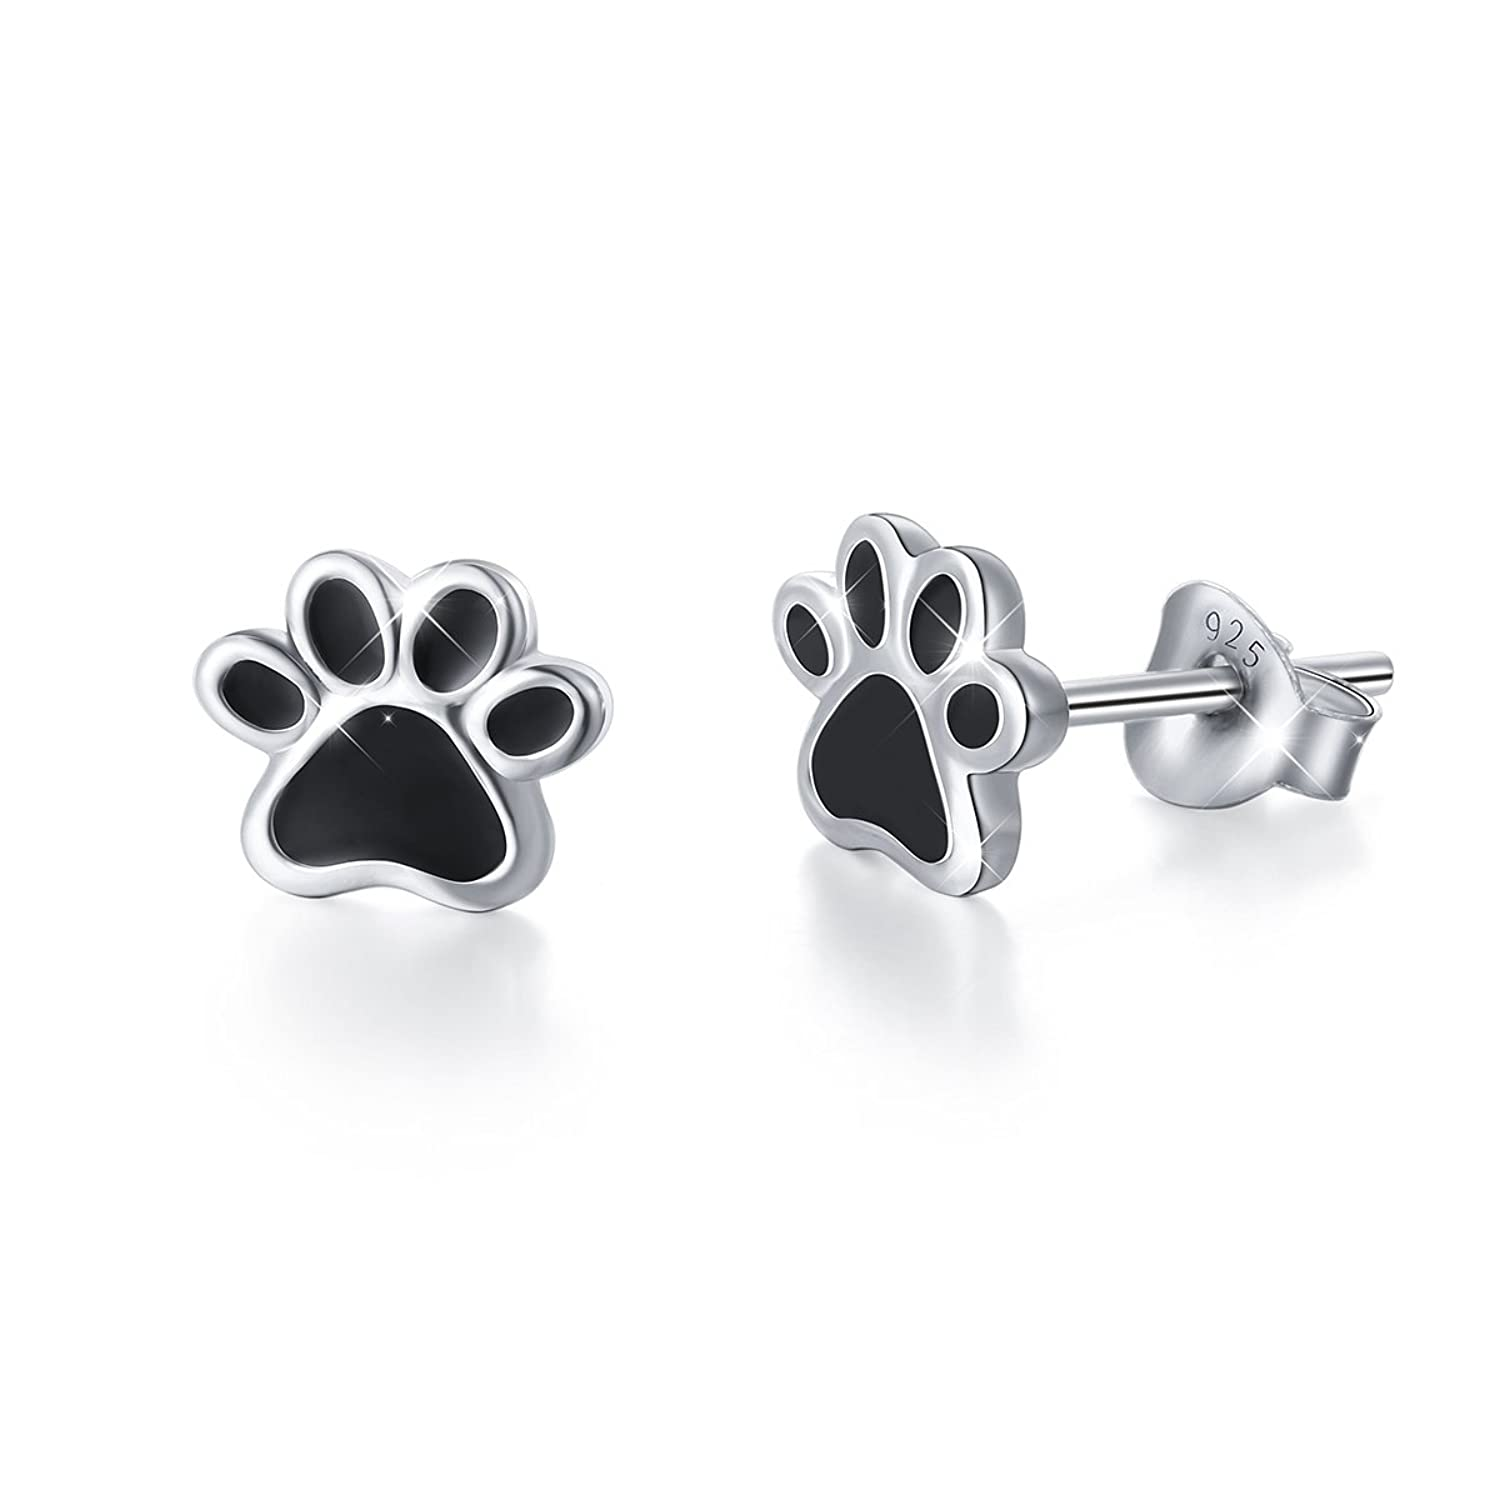 earring fashion print item girl gift girls cat animal women jewelry from in earrings dog stud paw cute sanlan